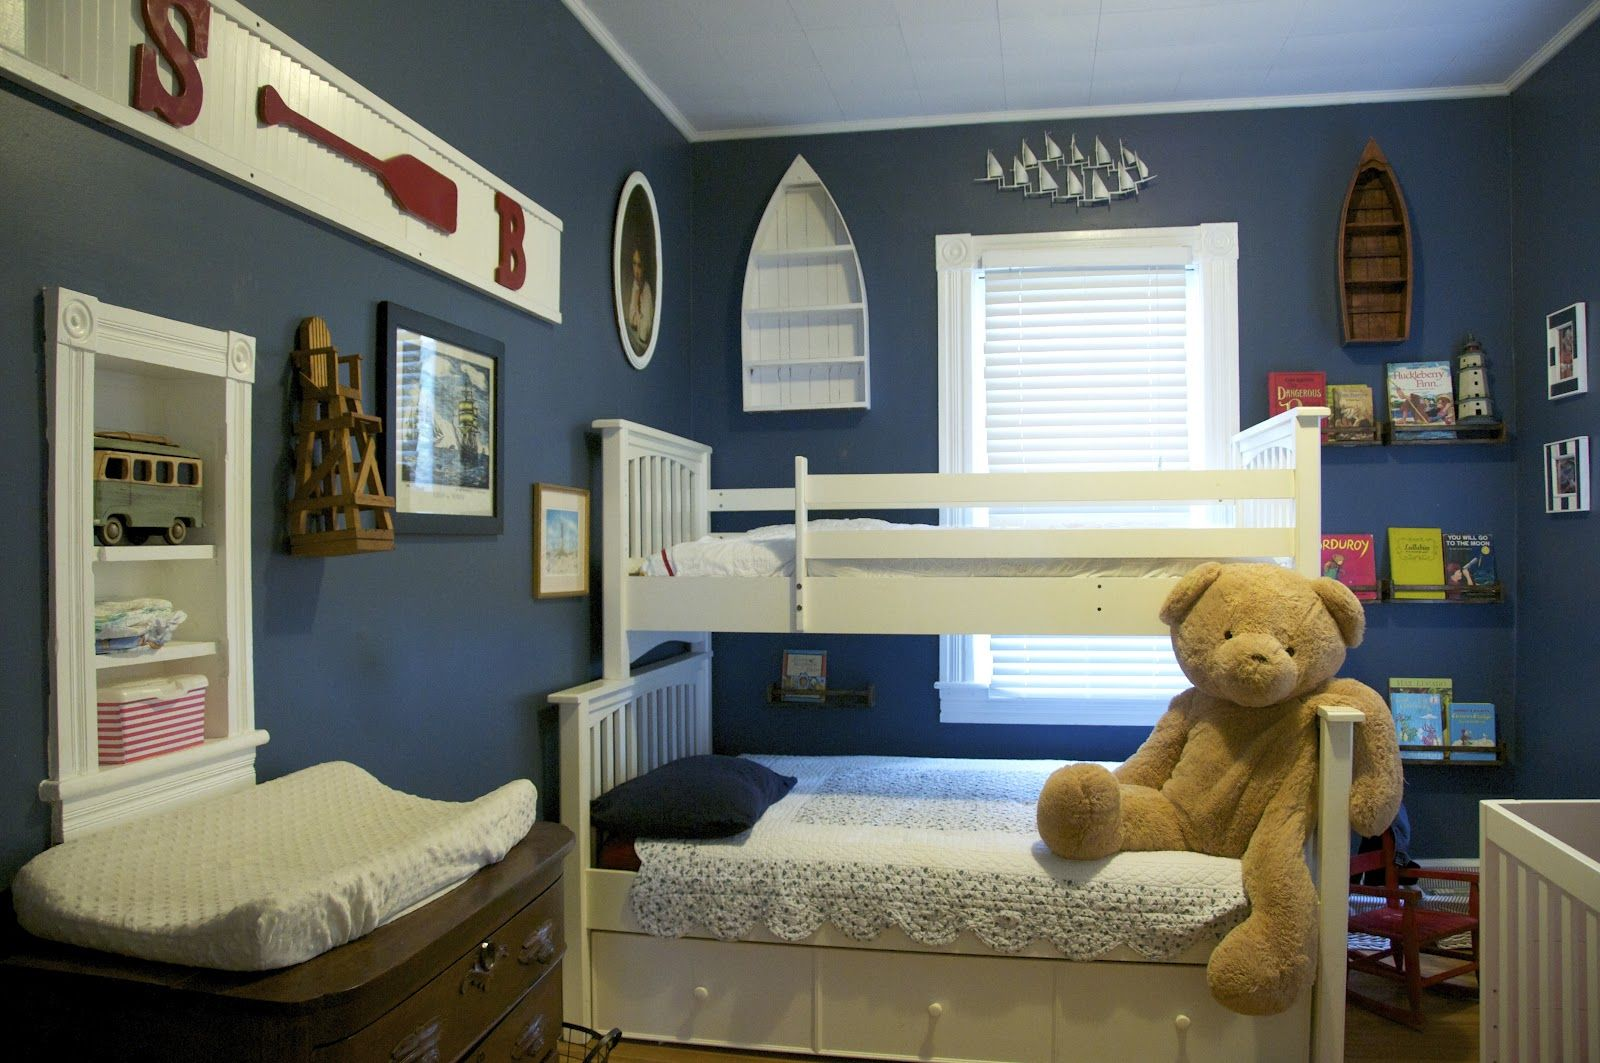 Kids Bedroom 2014 bedroom-design : paint color ideas for boys bedroom 2014 bedroom